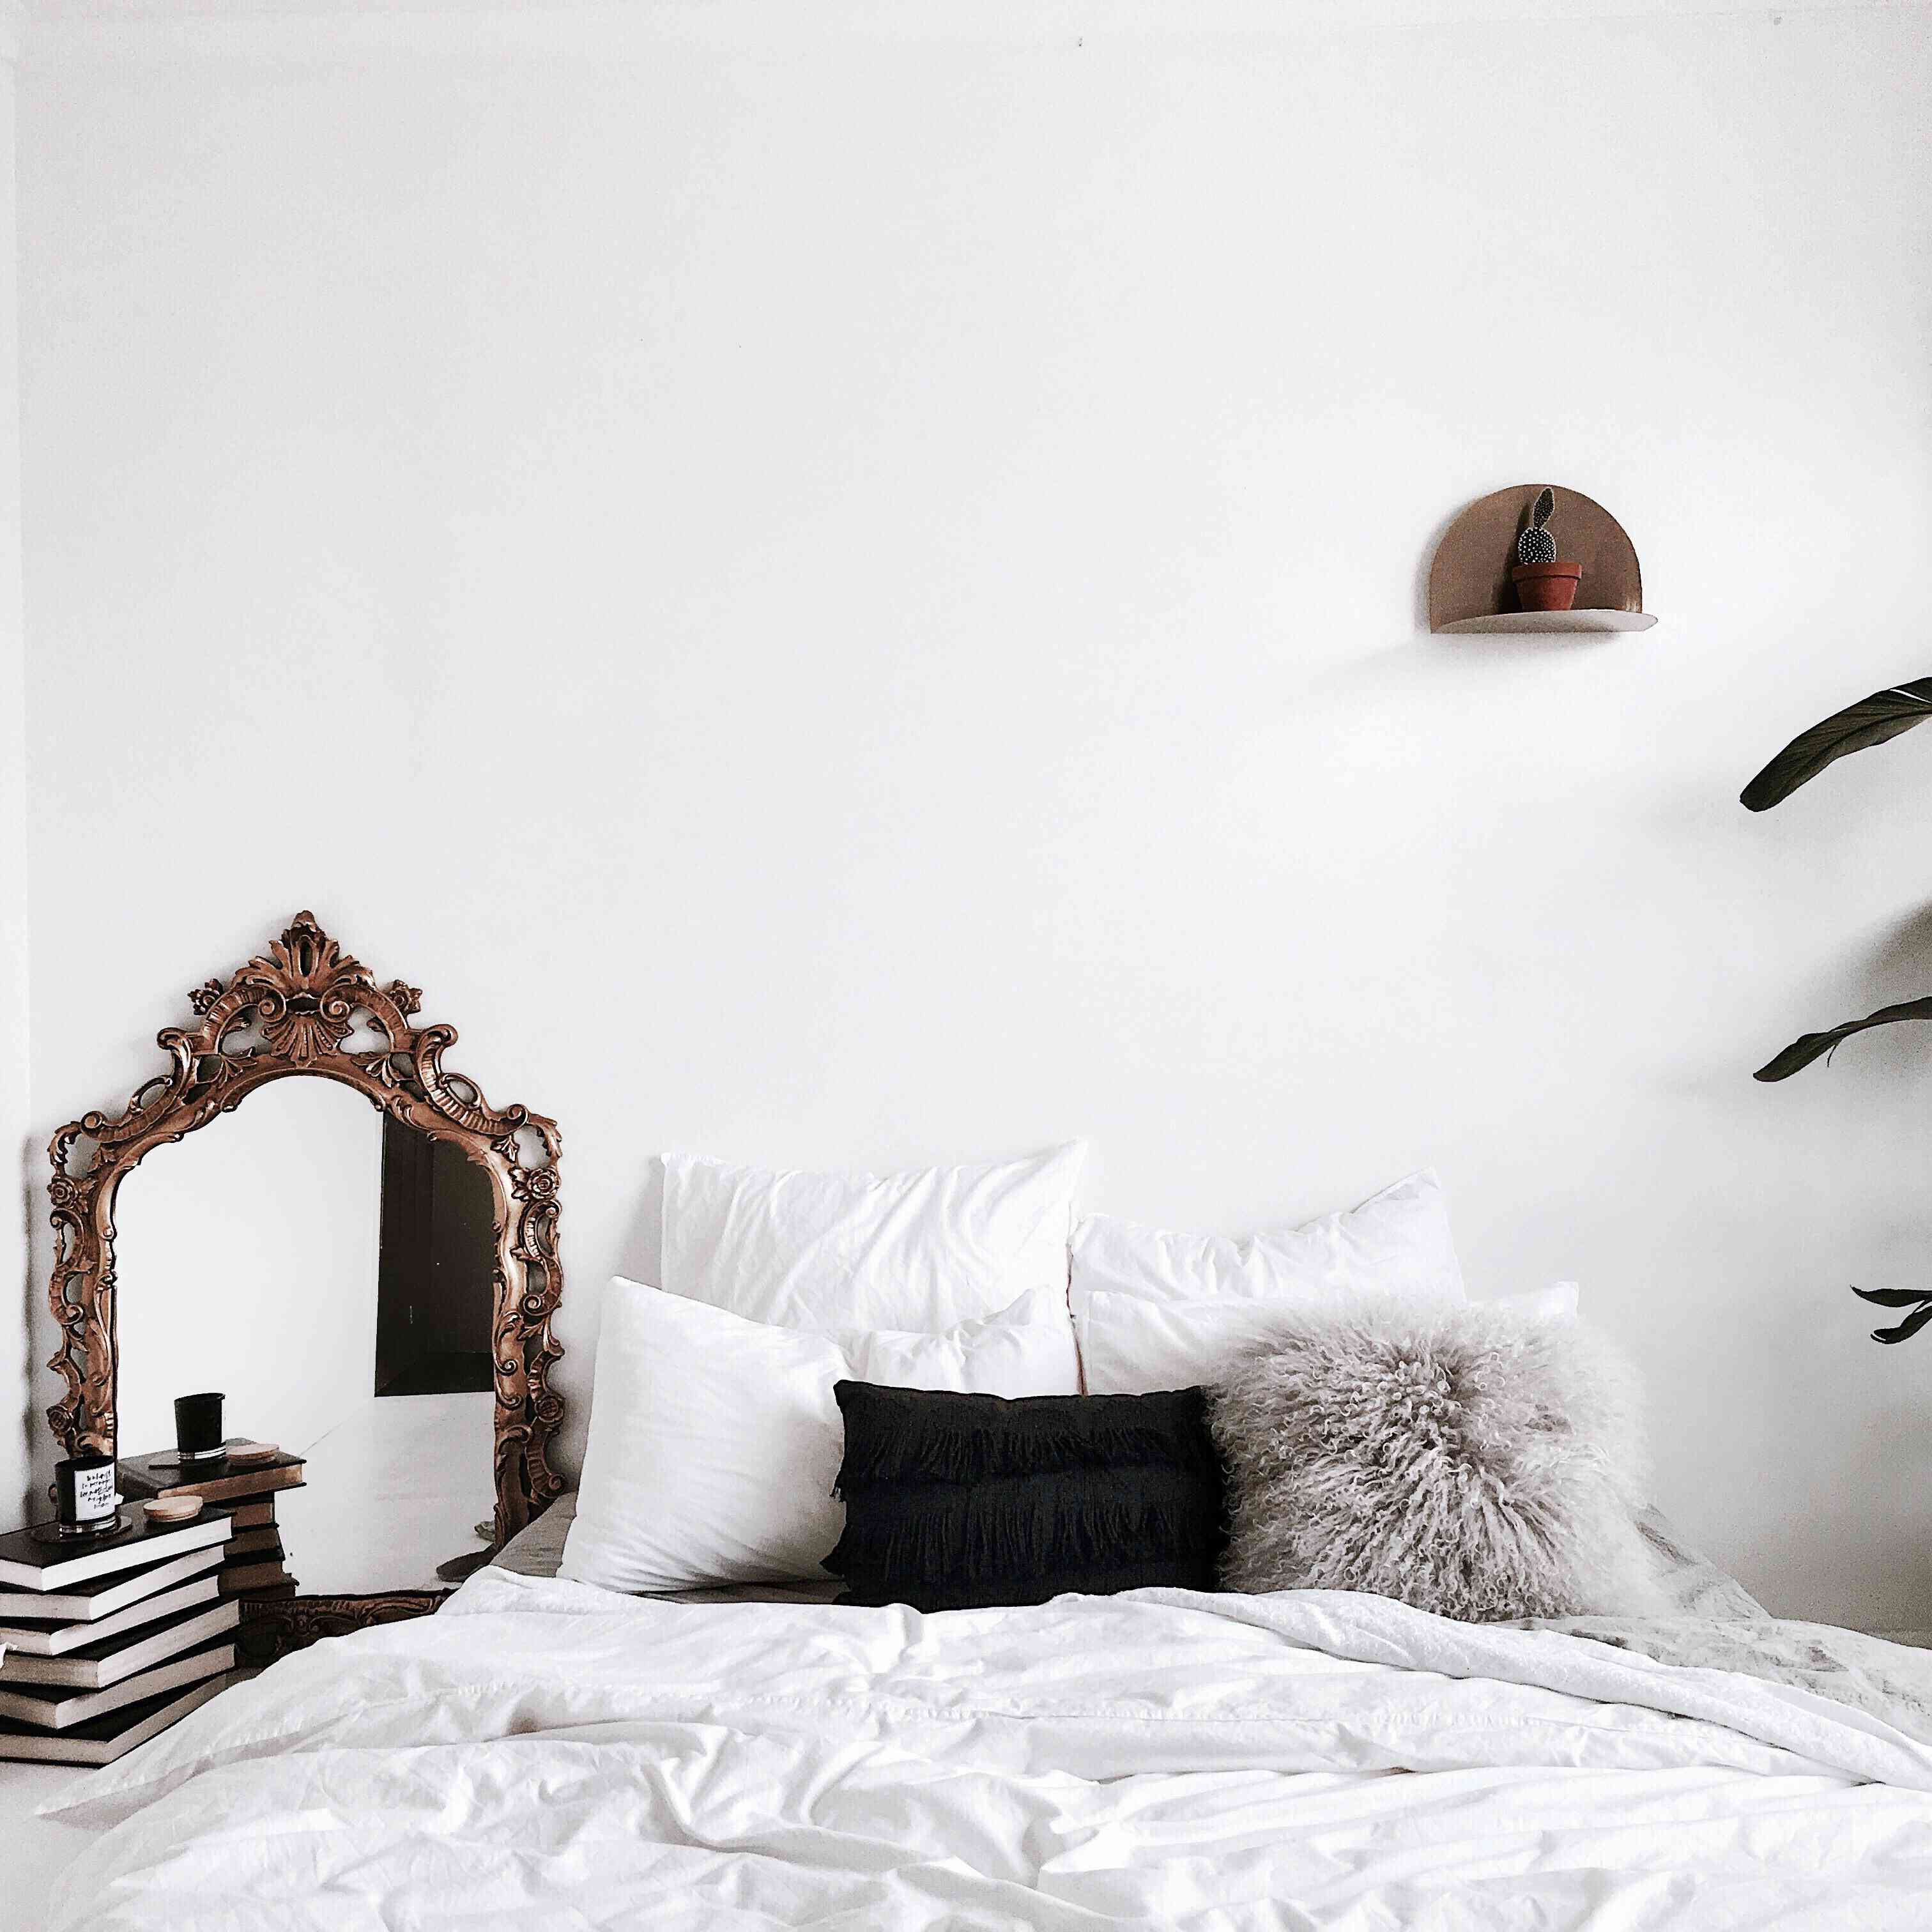 12 Feng Shui Tips All Couples Should Try in Their Bedroom